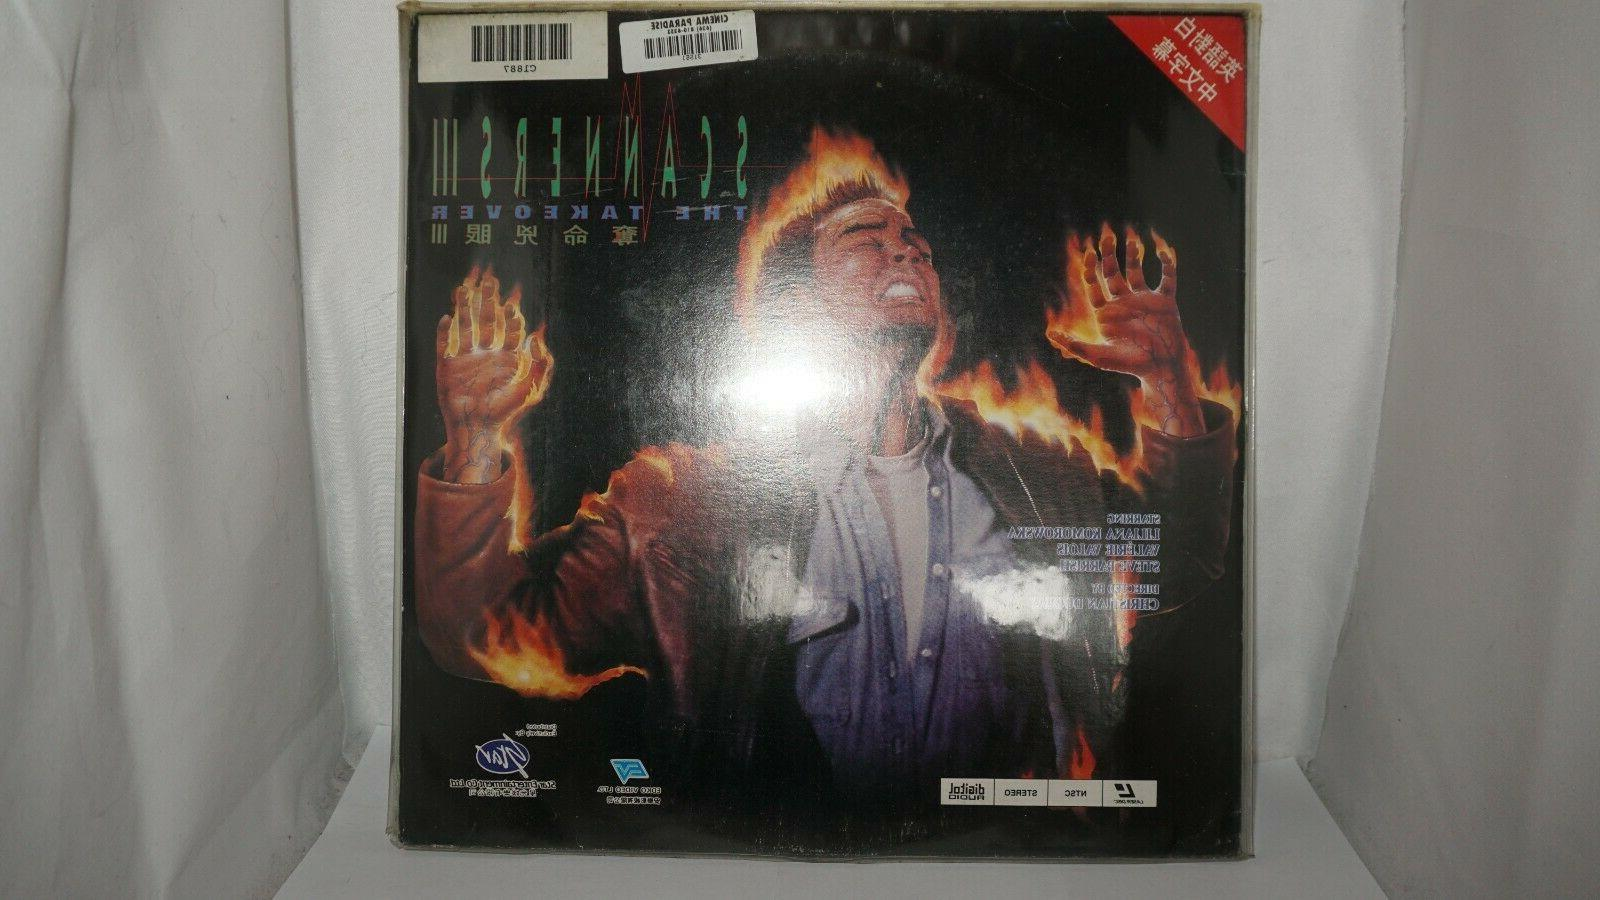 Scanners III The Takeover Laserdisc Chinese Subtitile #2